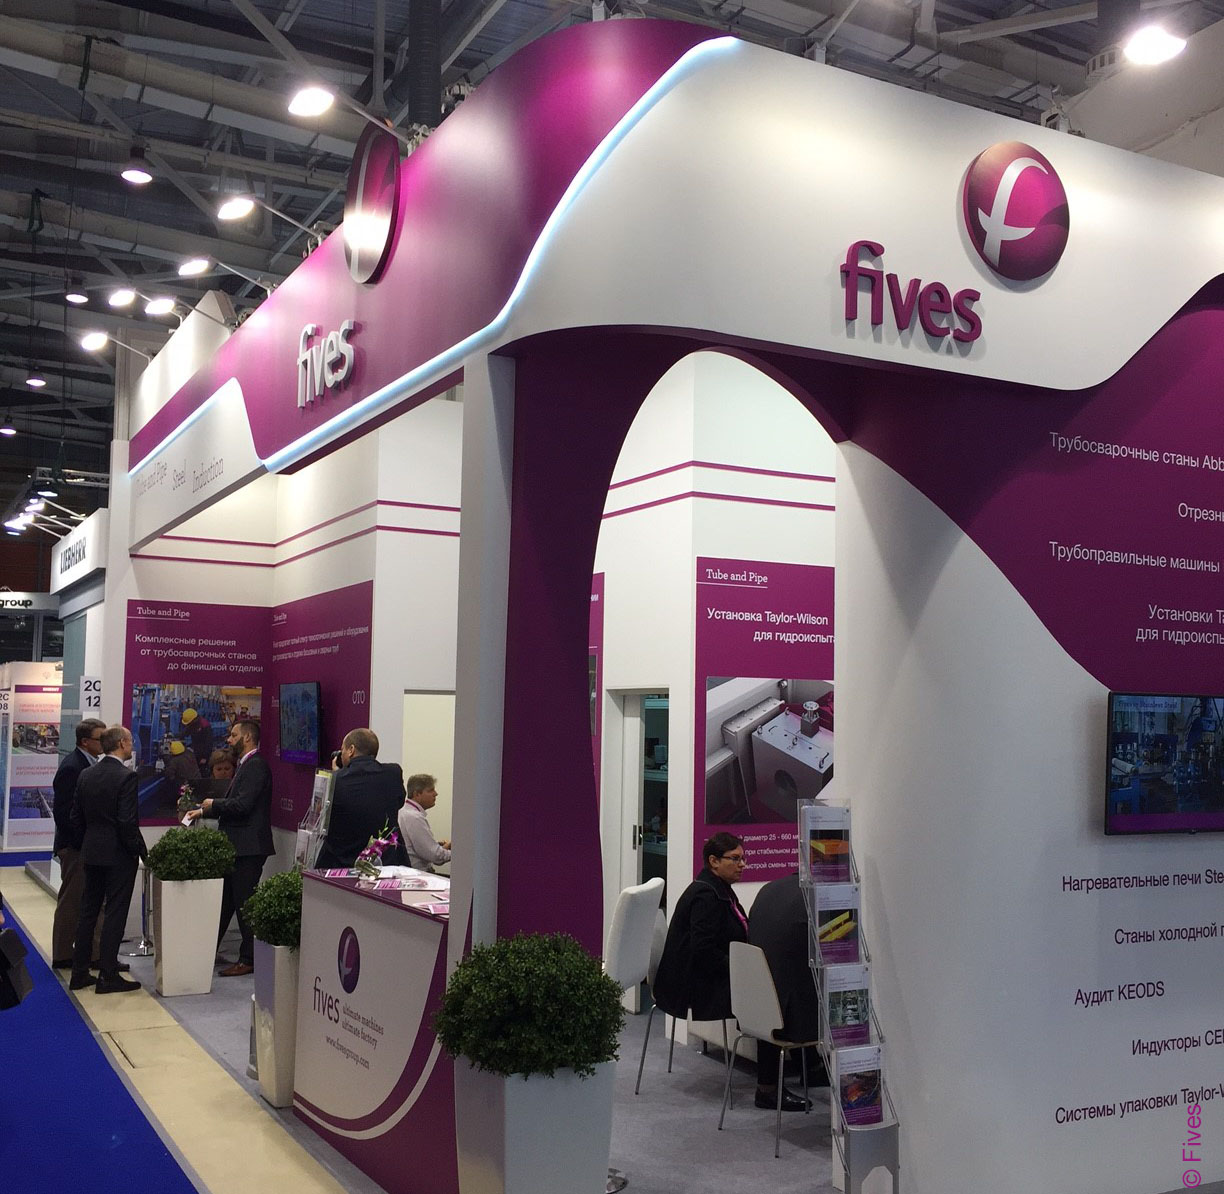 Fives' stand at Metal-Expo 2016